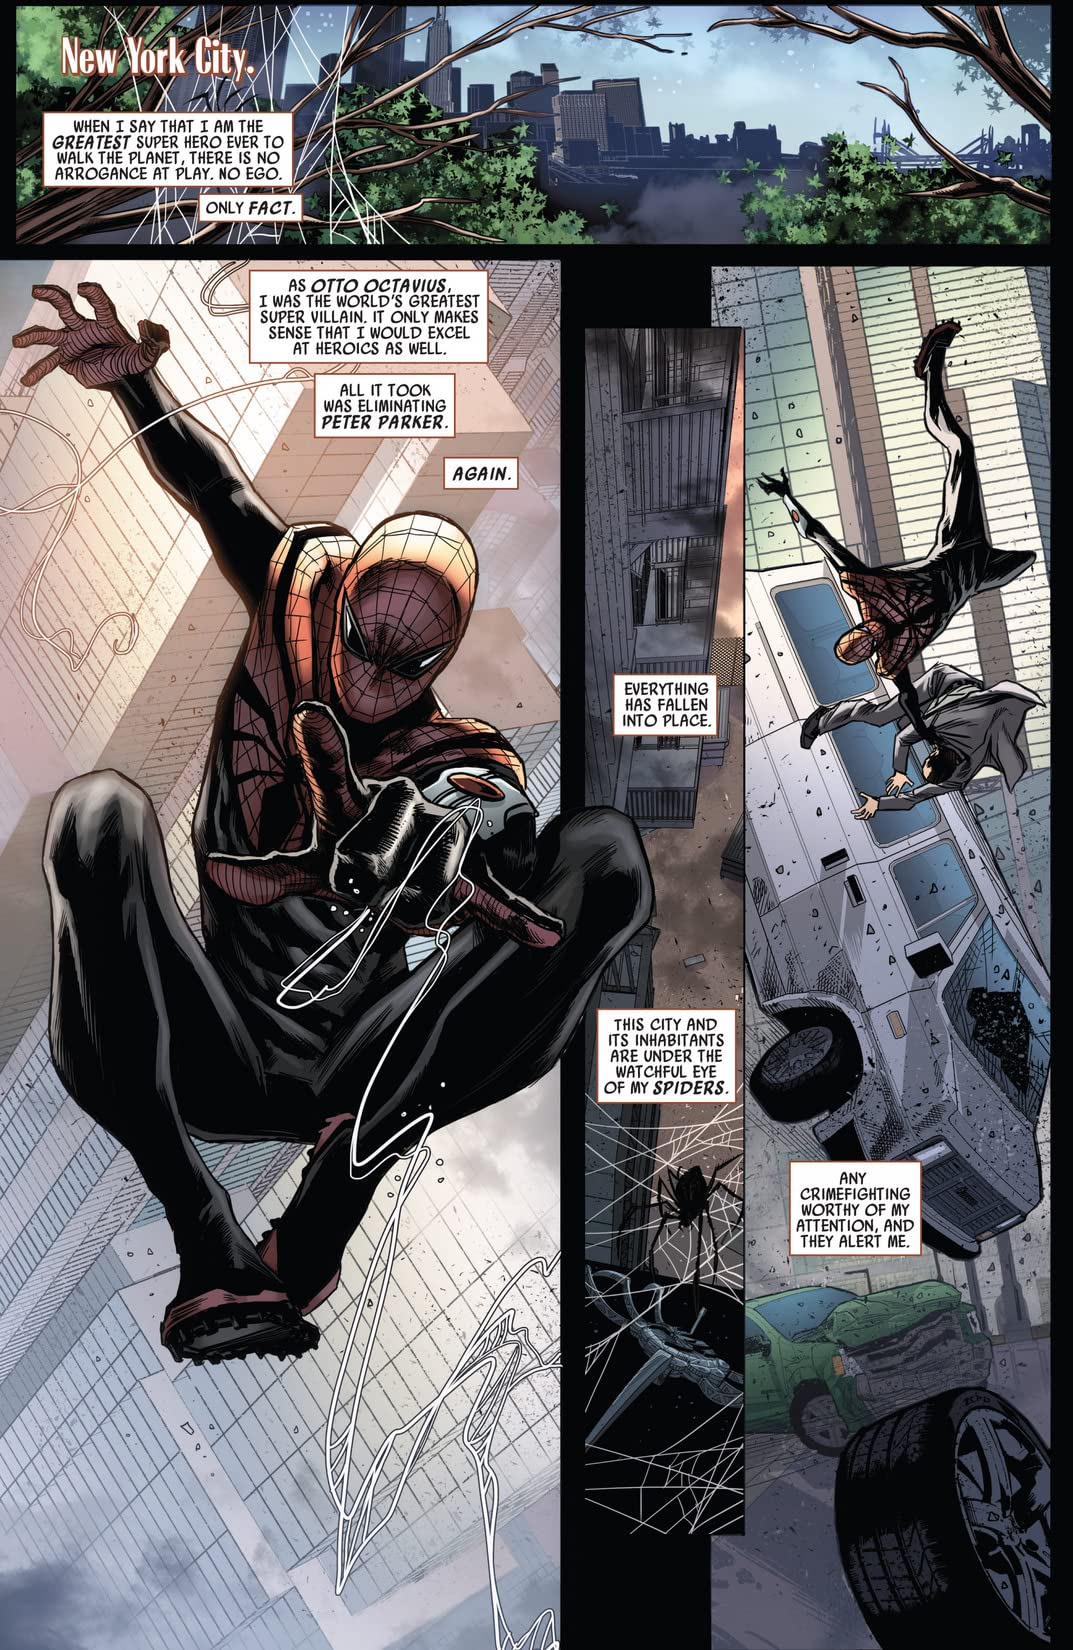 Superior Spider-Man Team-Up #2